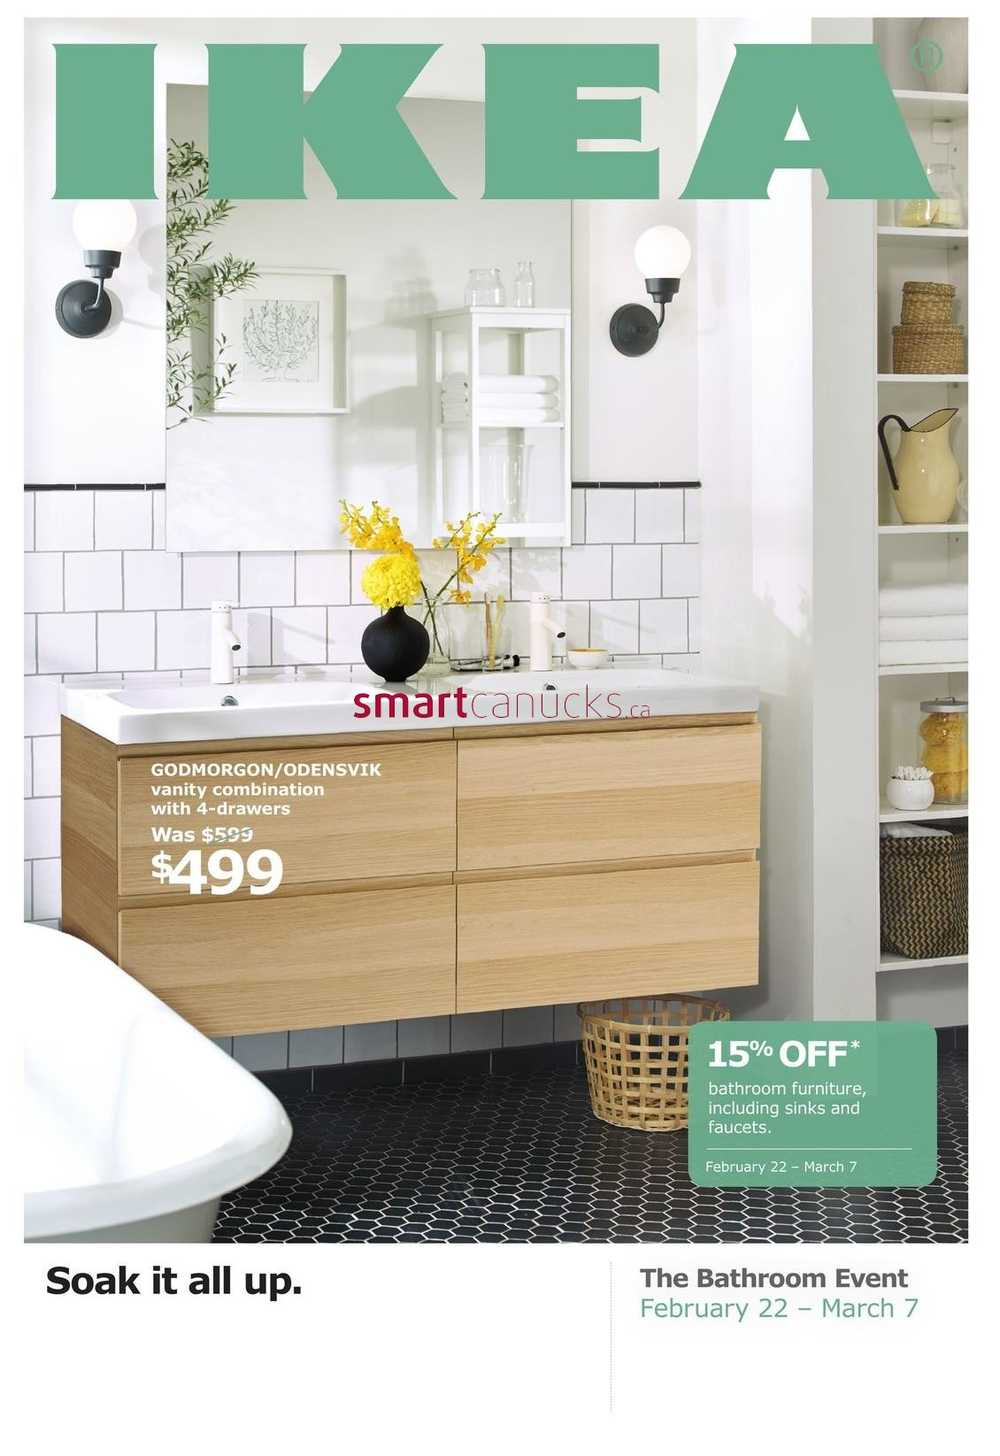 Ikea Bathroom Event Flyer February 22 To March 7